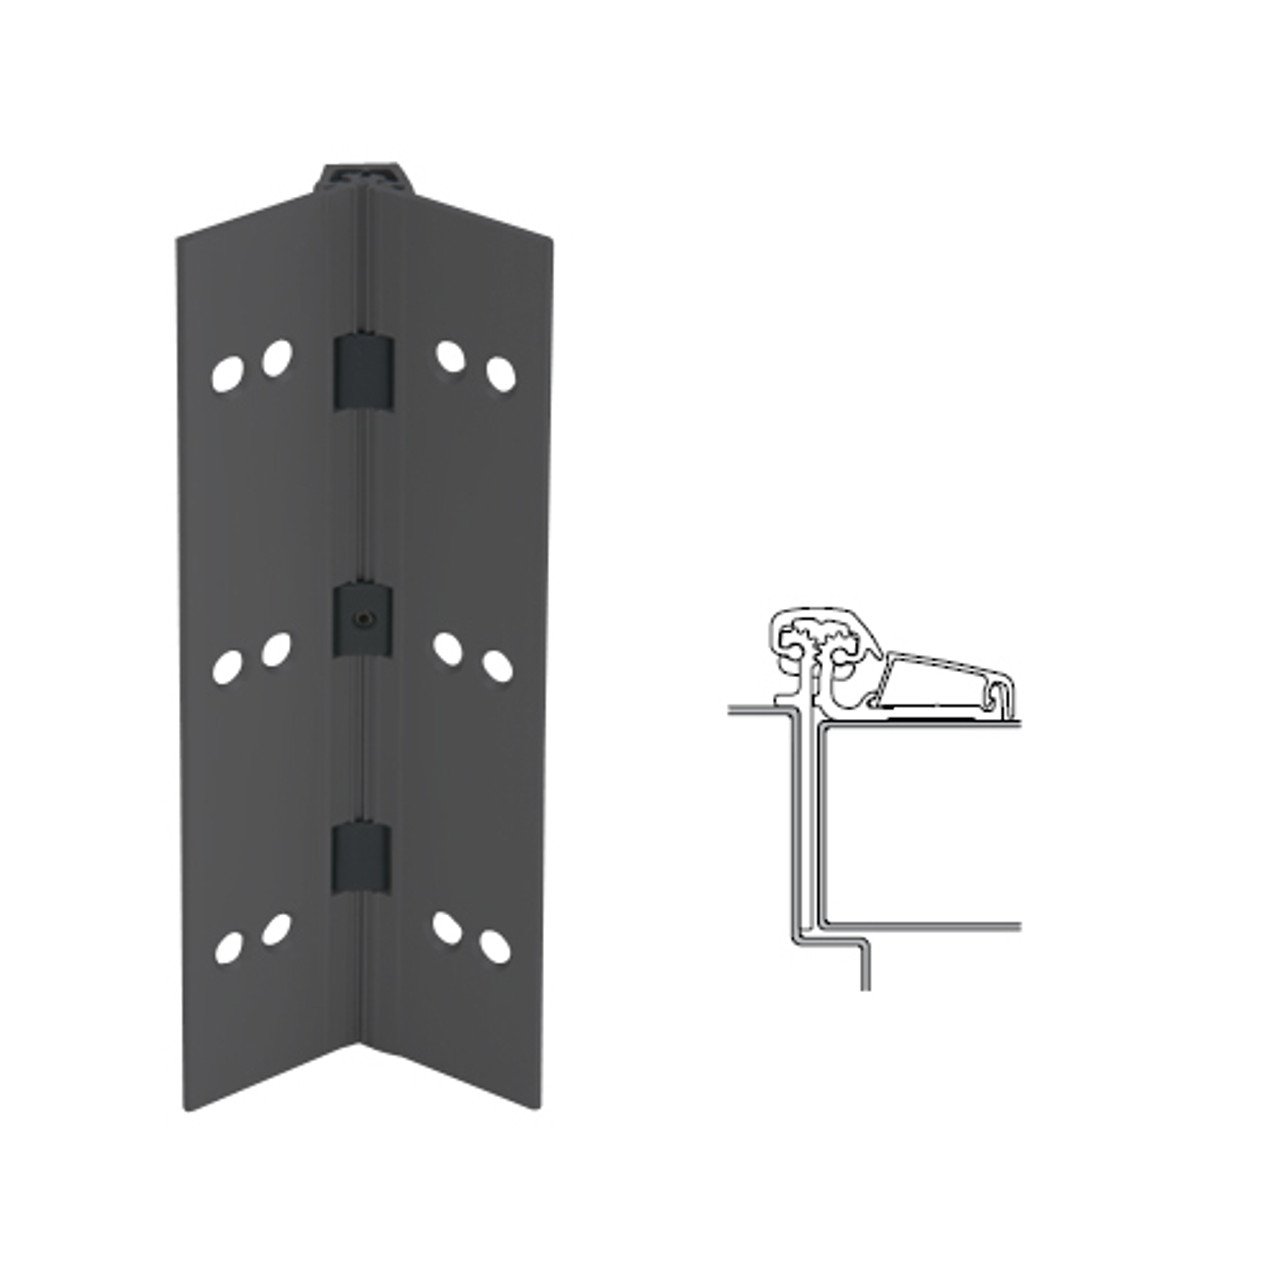 054XY-315AN-120-TEKWD IVES Adjustable Half Surface Continuous Geared Hinges with Wood Screws in Anodized Black